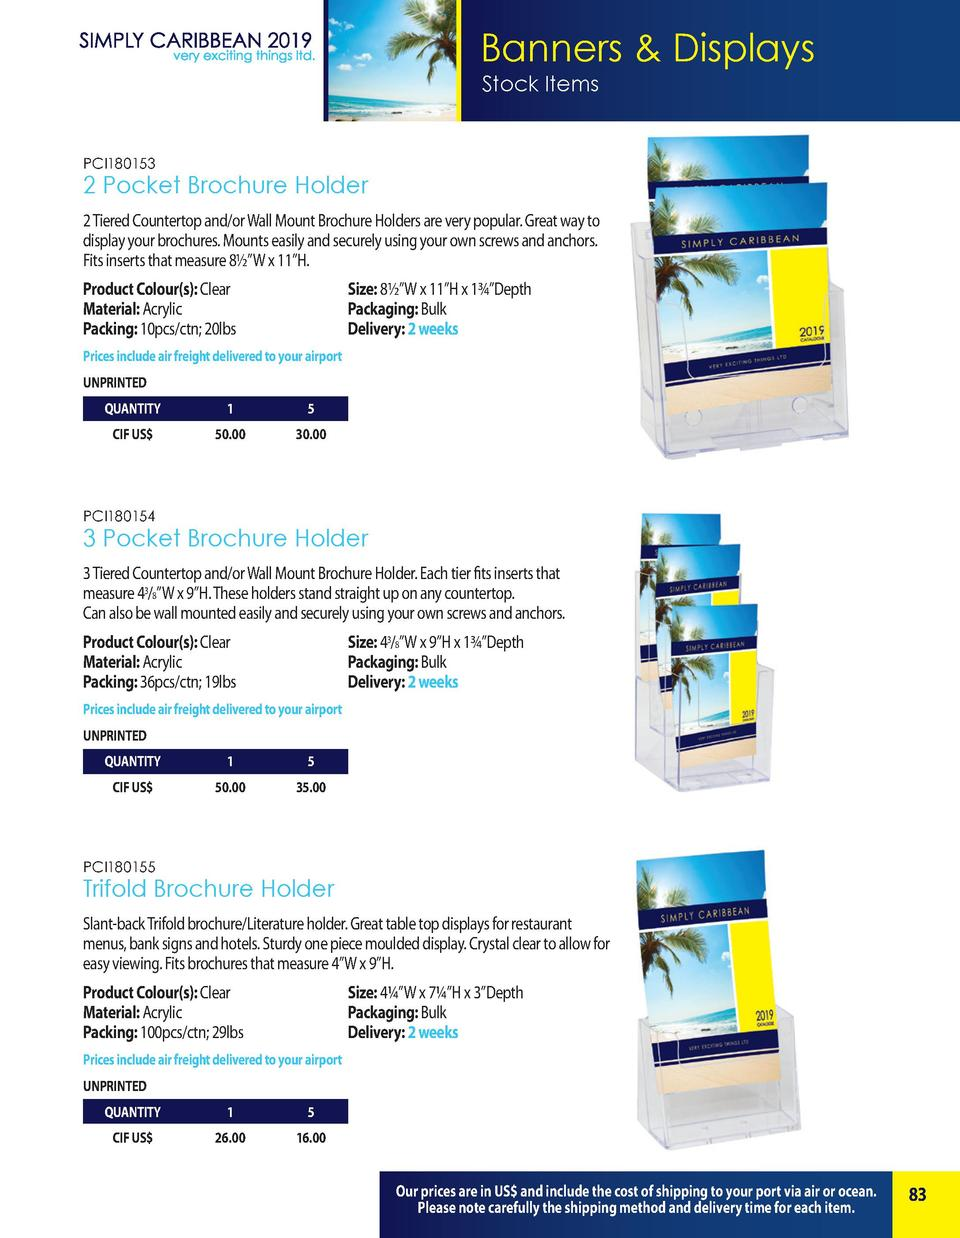 Banners   Displays Stock Items  PCI180153  2 Pocket Brochure Holder 2 Tiered Countertop and or Wall Mount Brochure Holders...